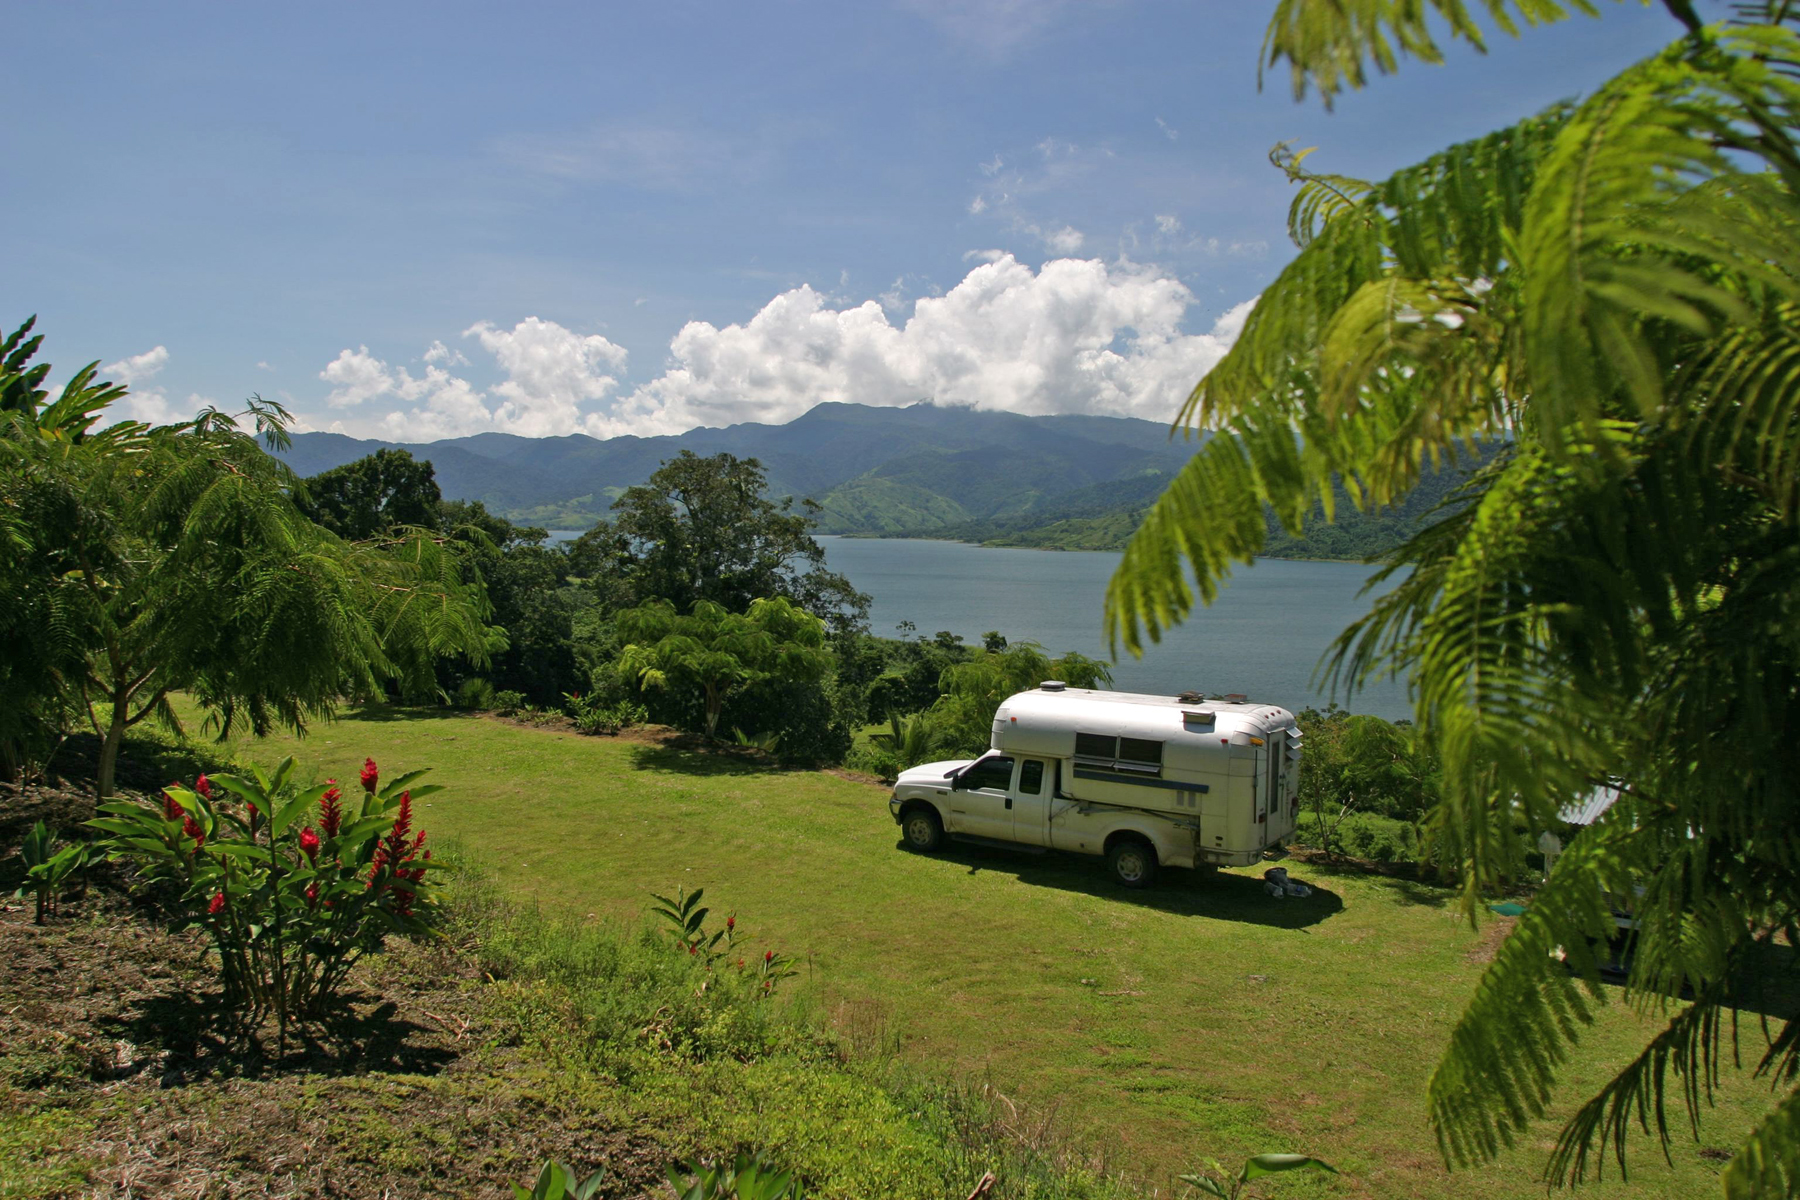 Costa Rica, the perfect camping spot